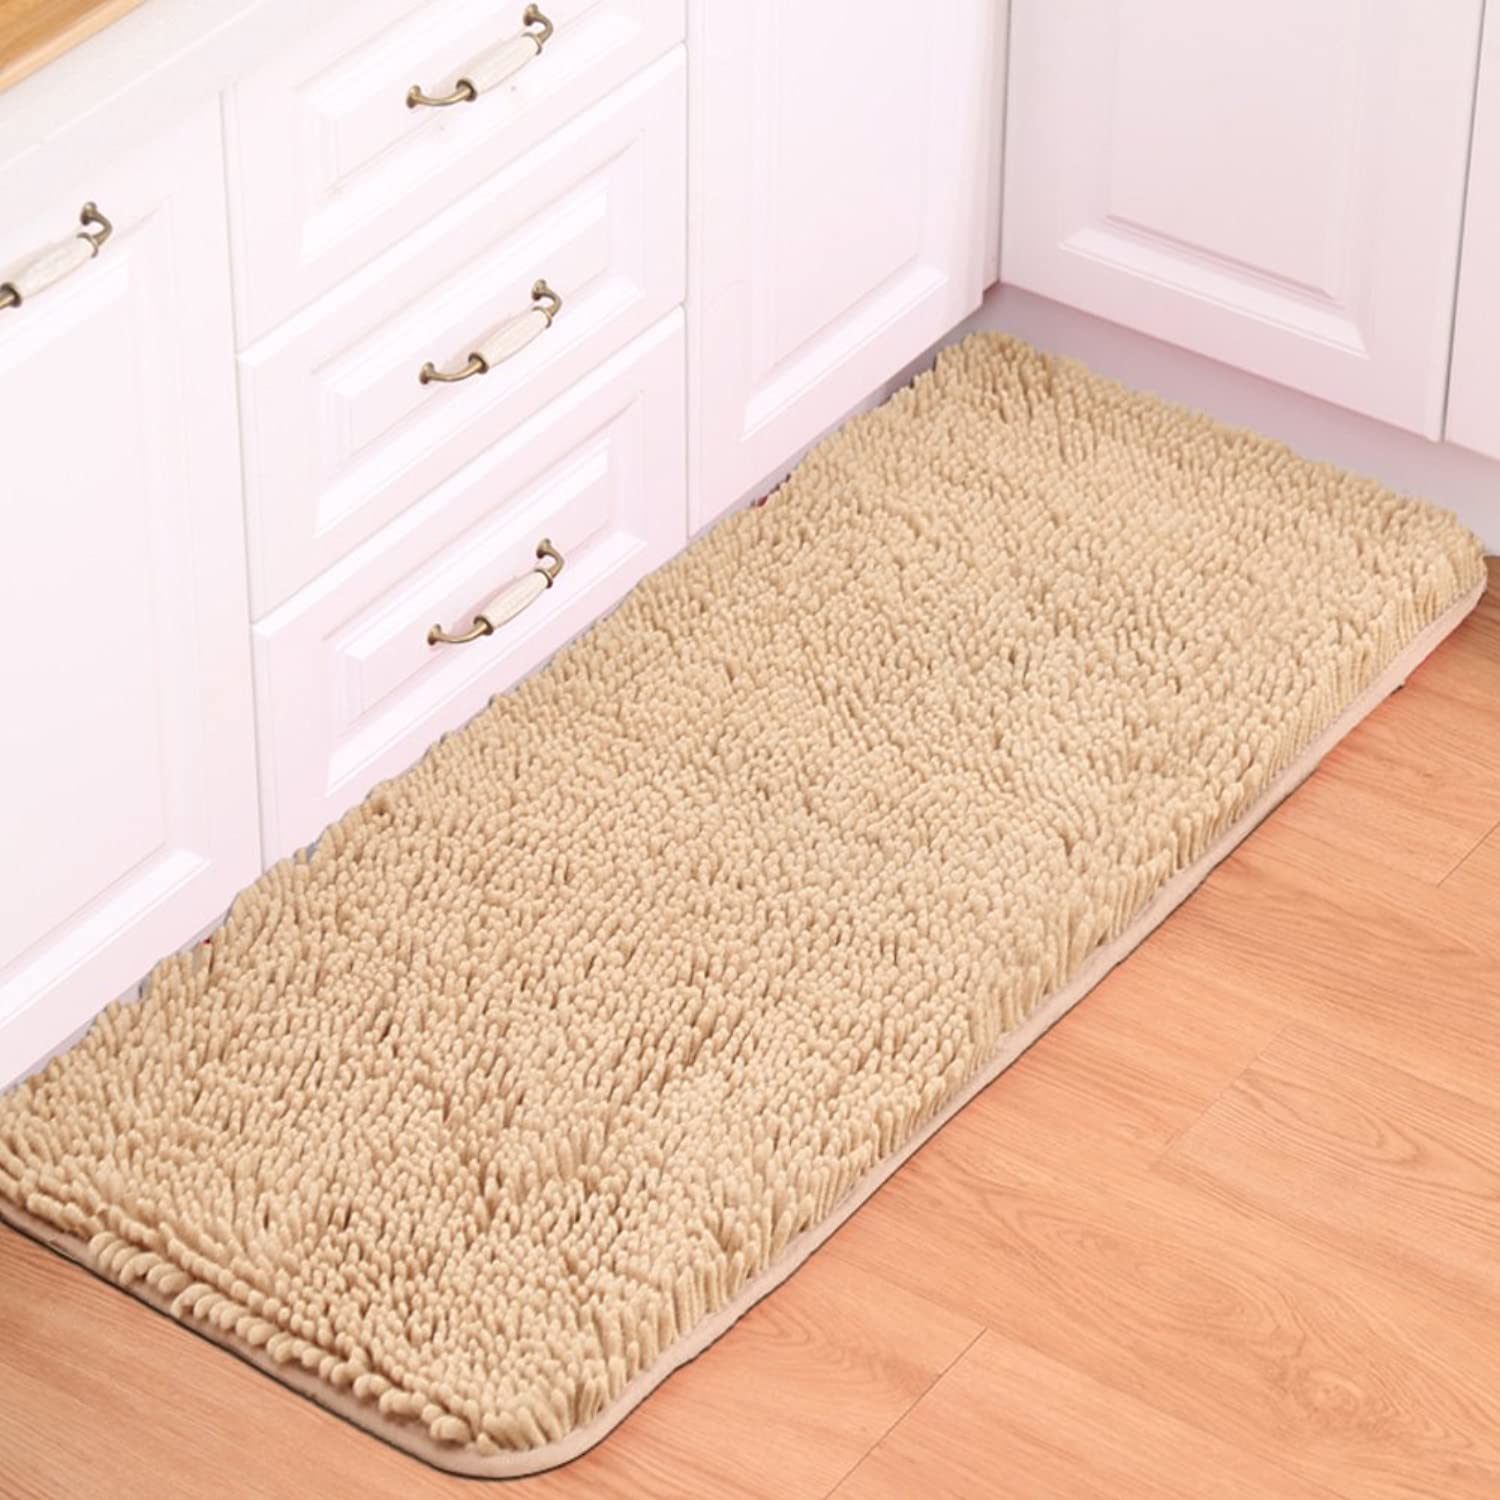 Chenille mat Floor mats Water-Absorption Bathroom Anti-Slip mat Doormat Foot Pad Indoor mats Restroom Kitchen mats-K 70x140cm(28x55inch)